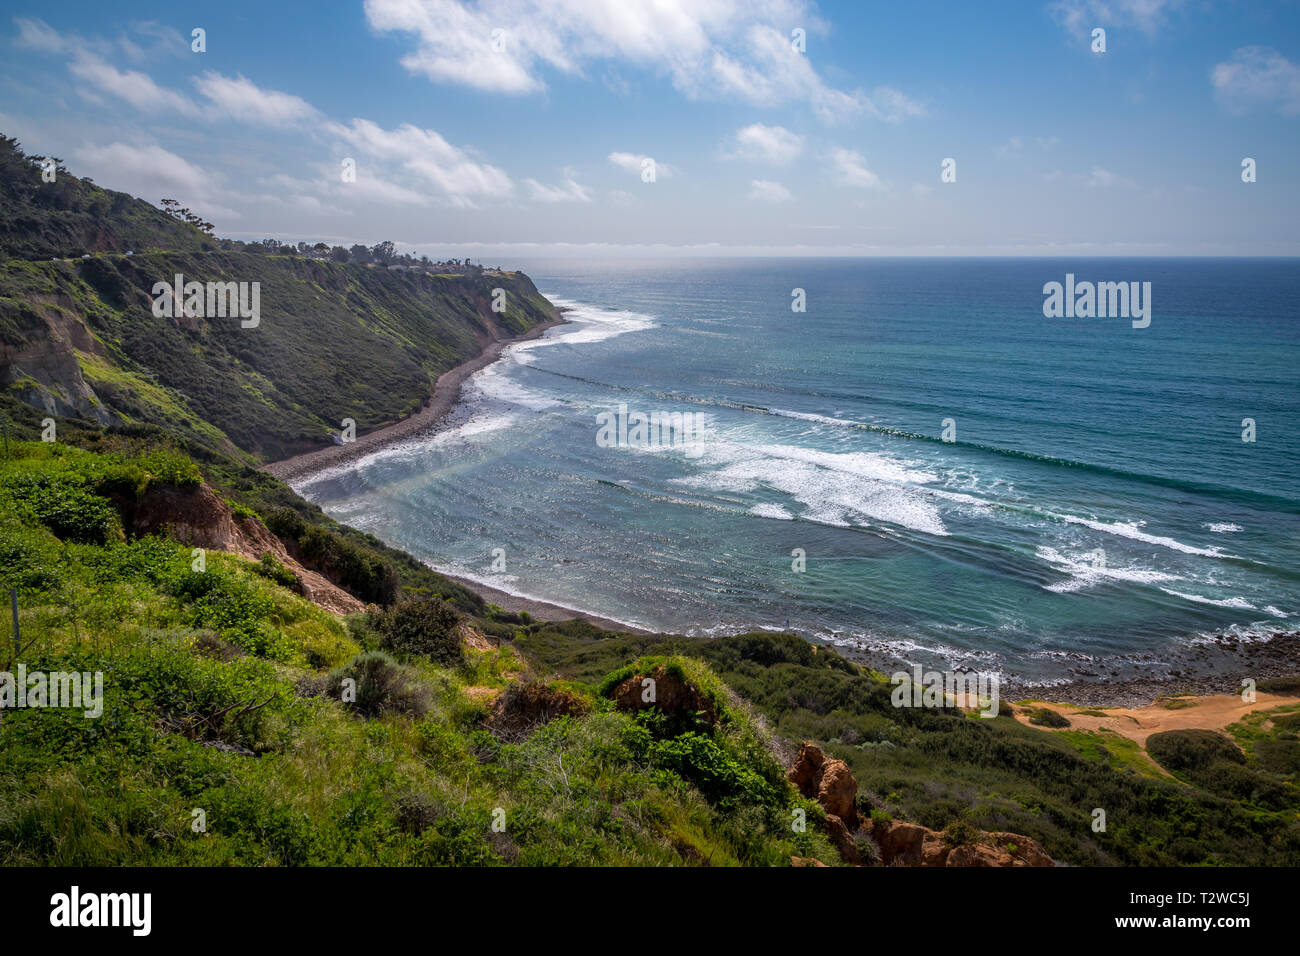 Scenic coastal view of tall cliffs of Bluff Cove covered with vegetation on a sunny spring day with  turquoise colored water and rocky beach, Blufftop - Stock Image